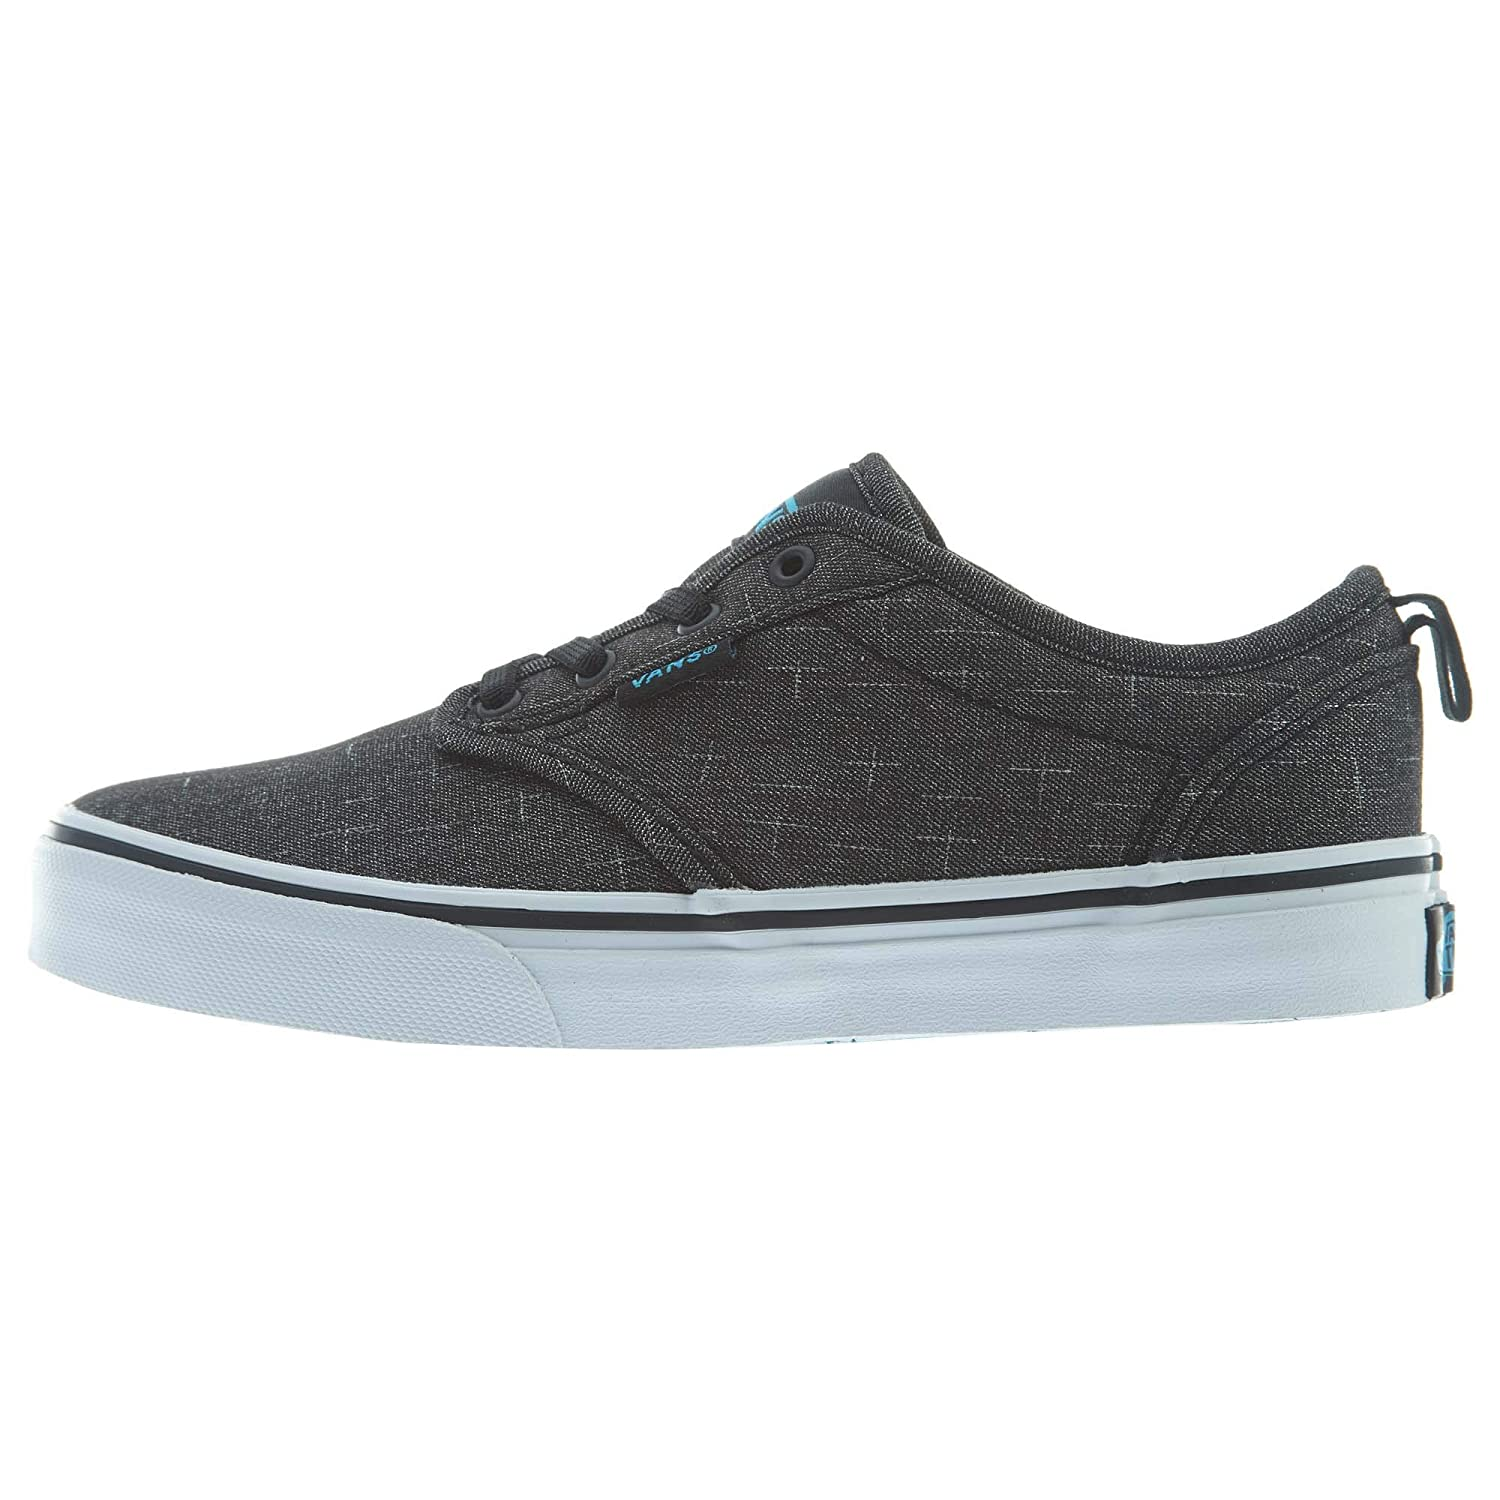 Vans Atwood Slip-On (Textile) Little Kids Style: VN0004LM-FN8 Size: 10.5  Black/Hawaiian Ocean